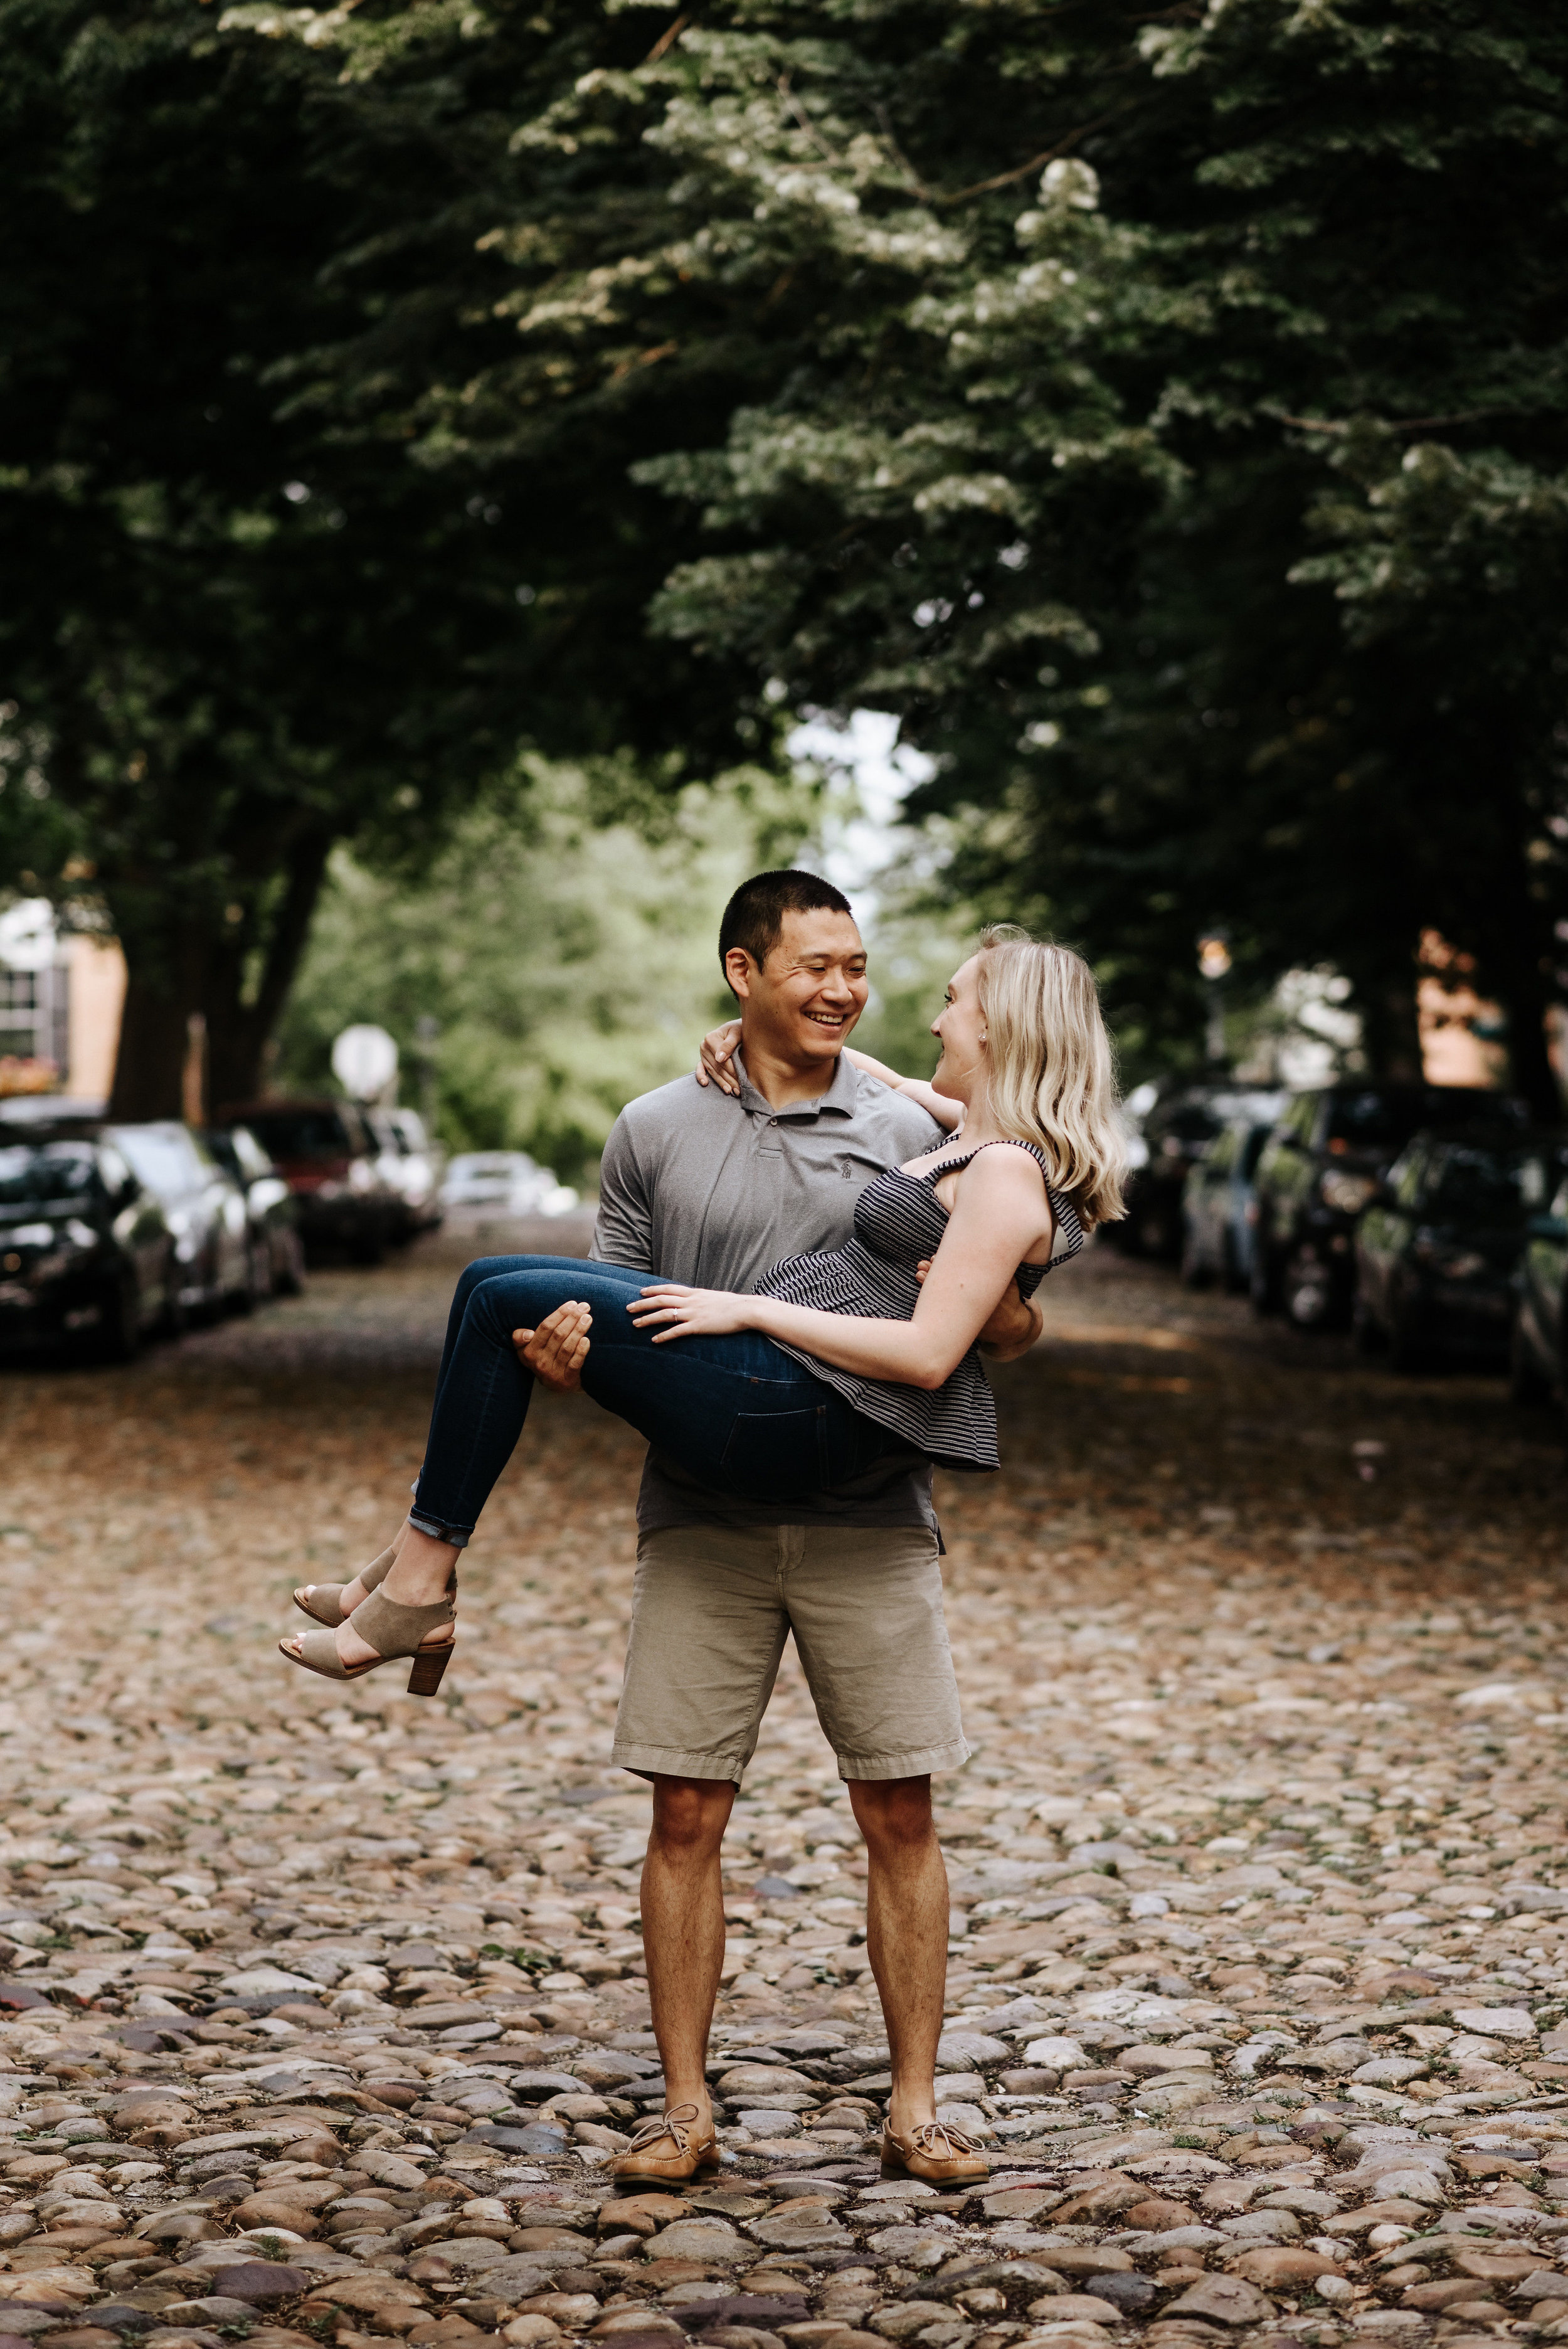 Bella_Alec_Old_Town_Alexandria_Engagement_Session_Photography_by_V_5737.jpg